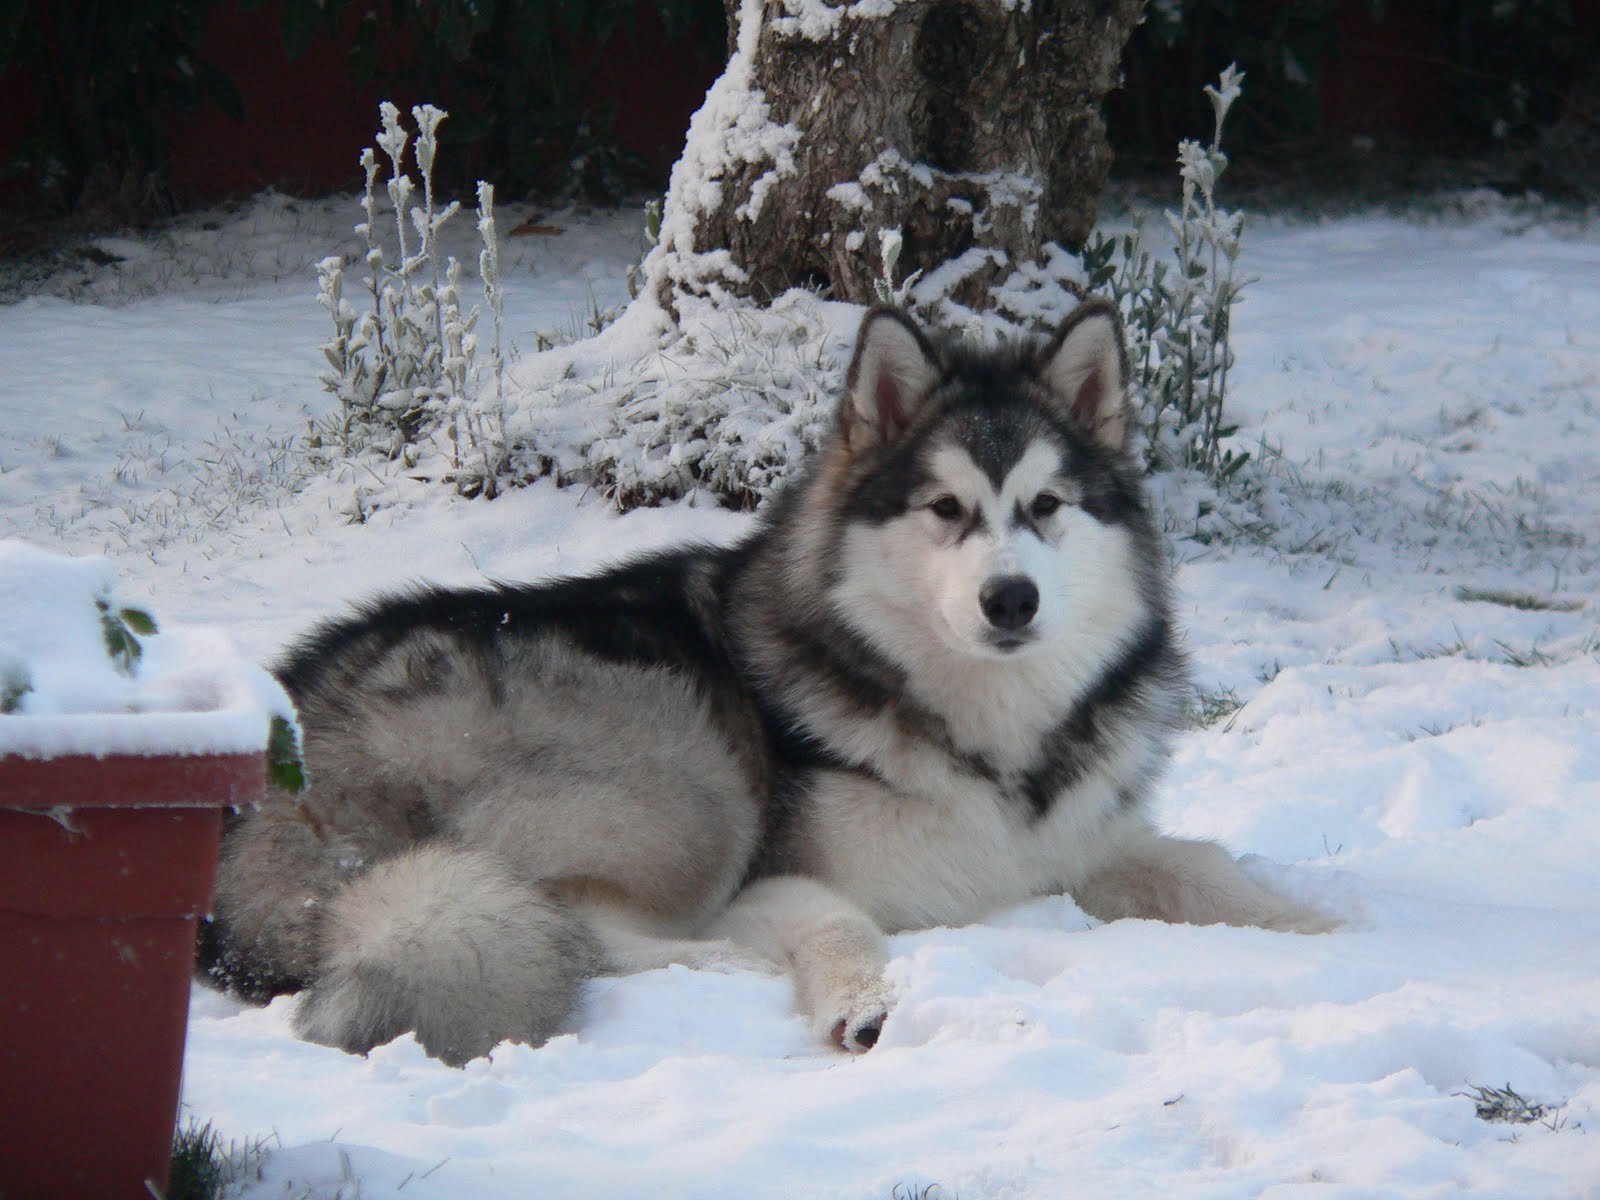 Alaskan Malamute in the winter forest wallpaper